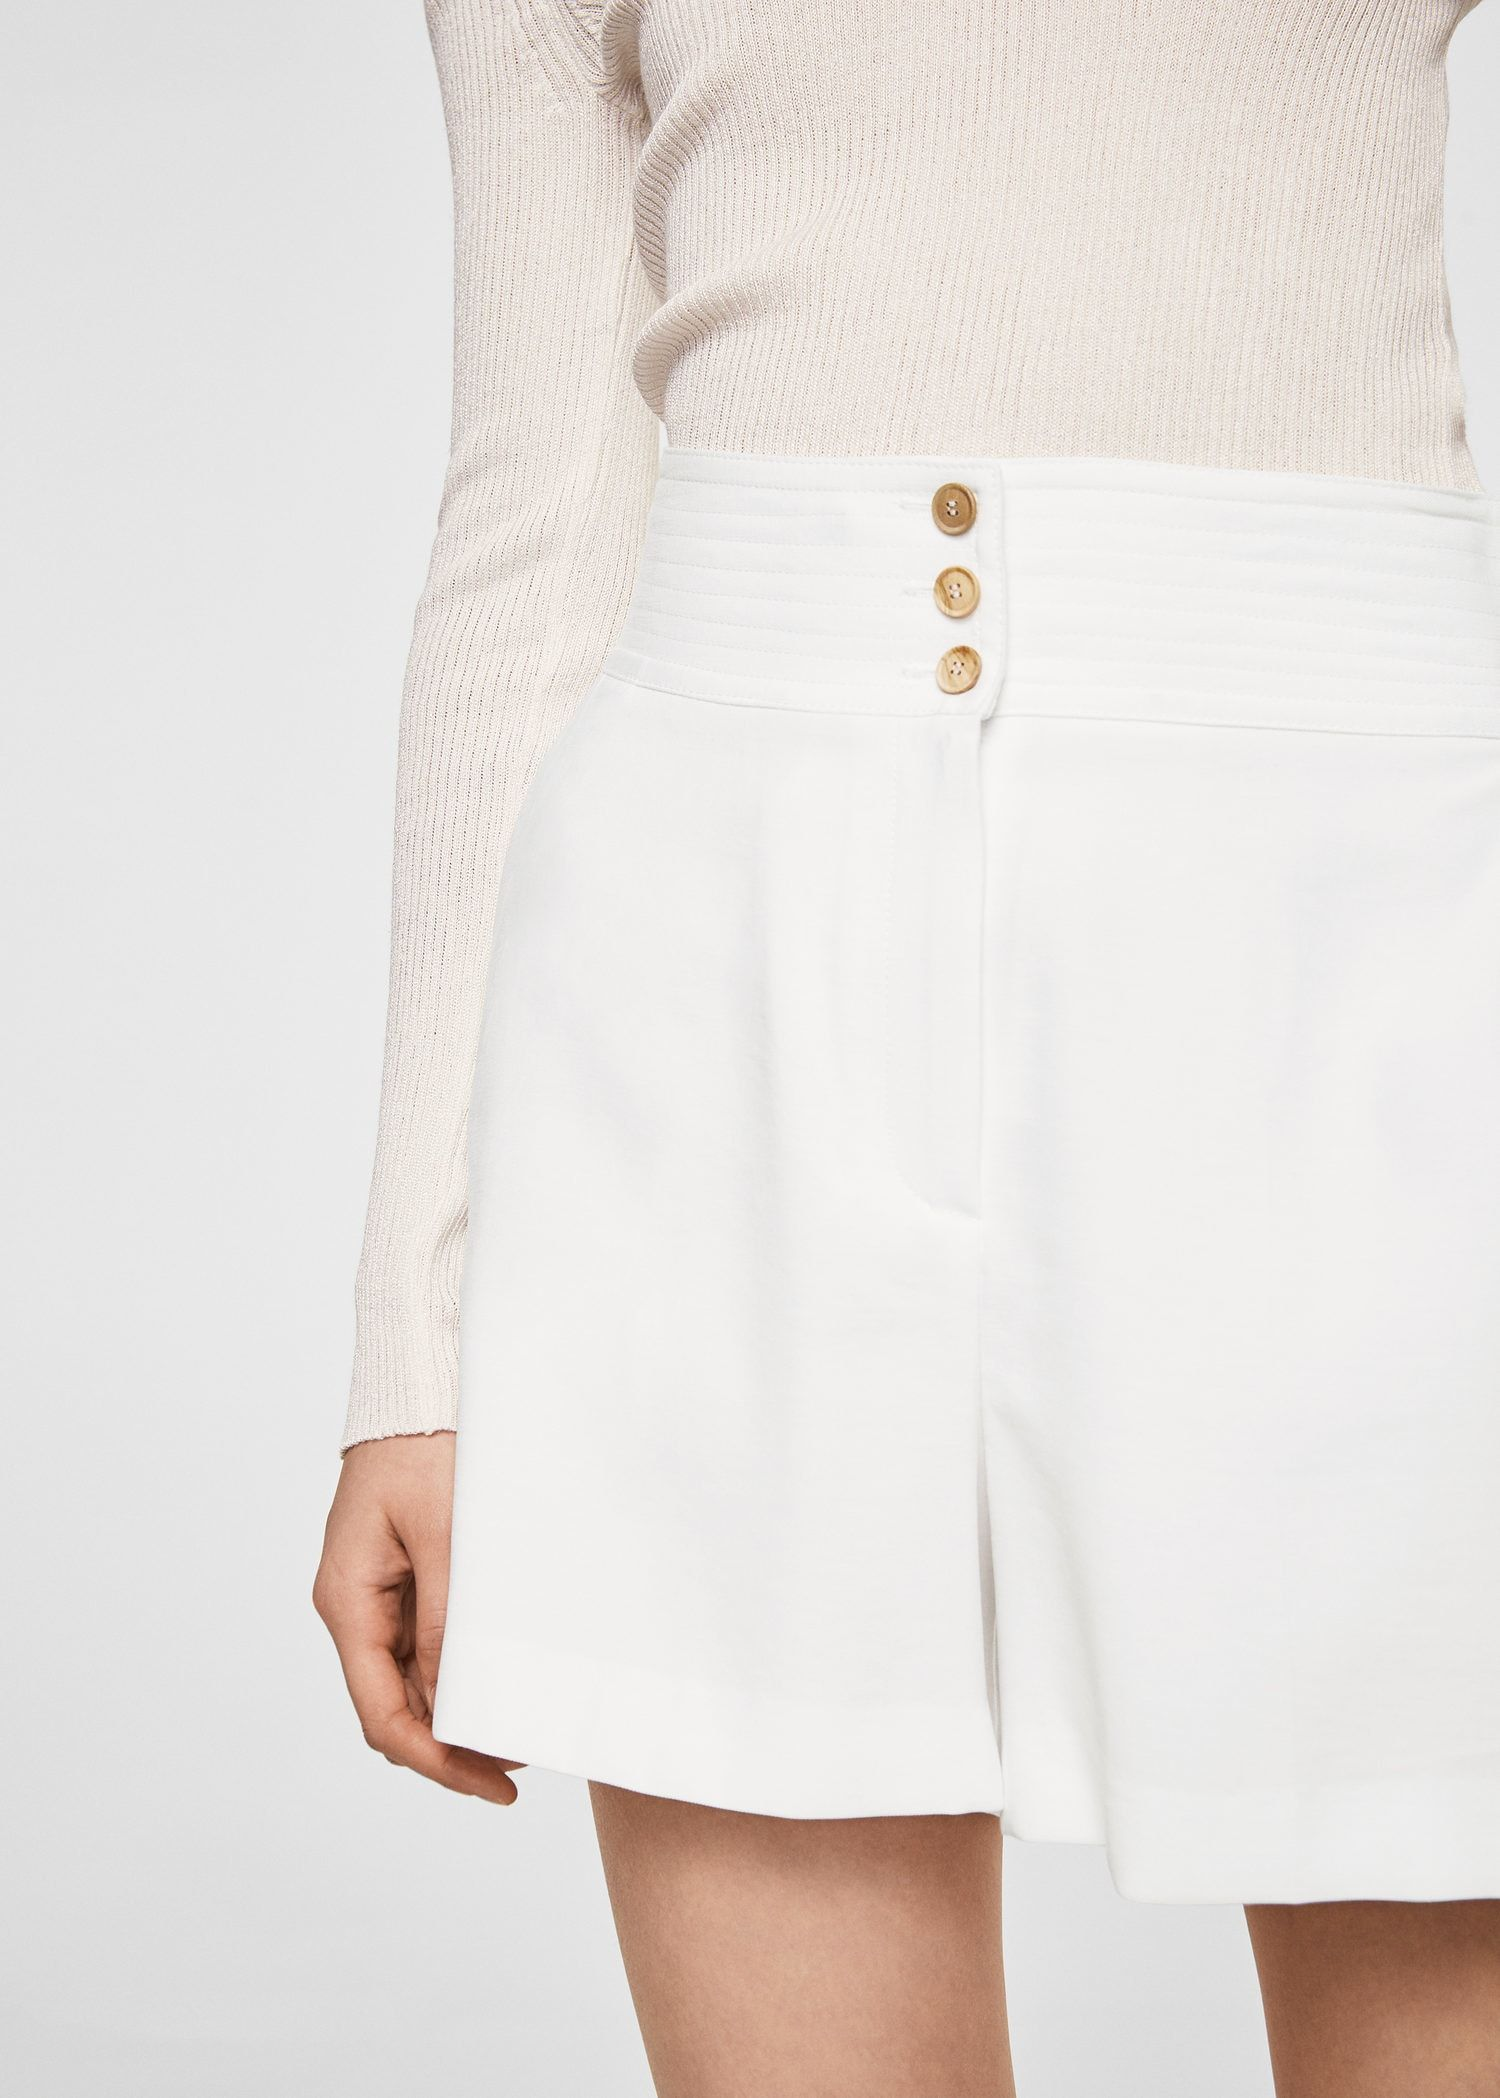 MANGO Buttoned high-waist shorts View For Sale Latest Cheap Sale Collections 7nDeUw5